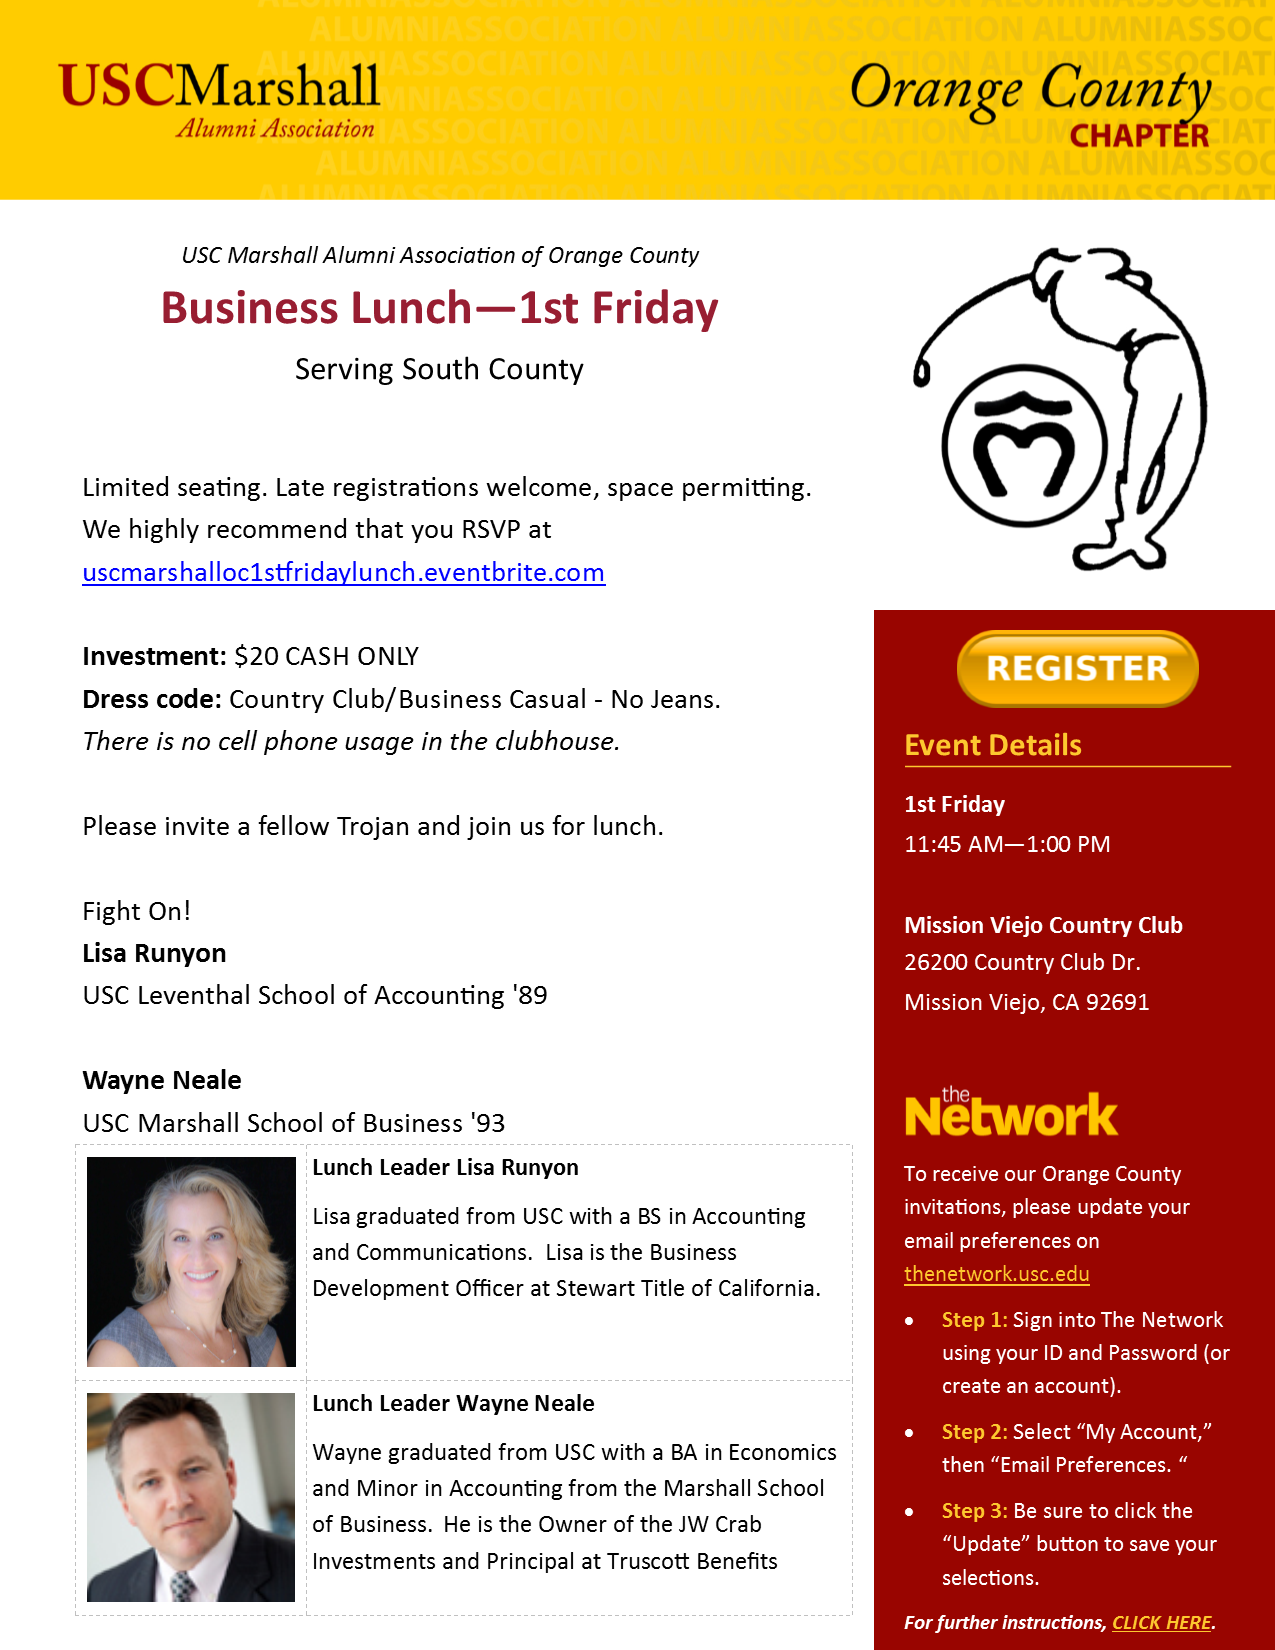 1st Friday Lunch